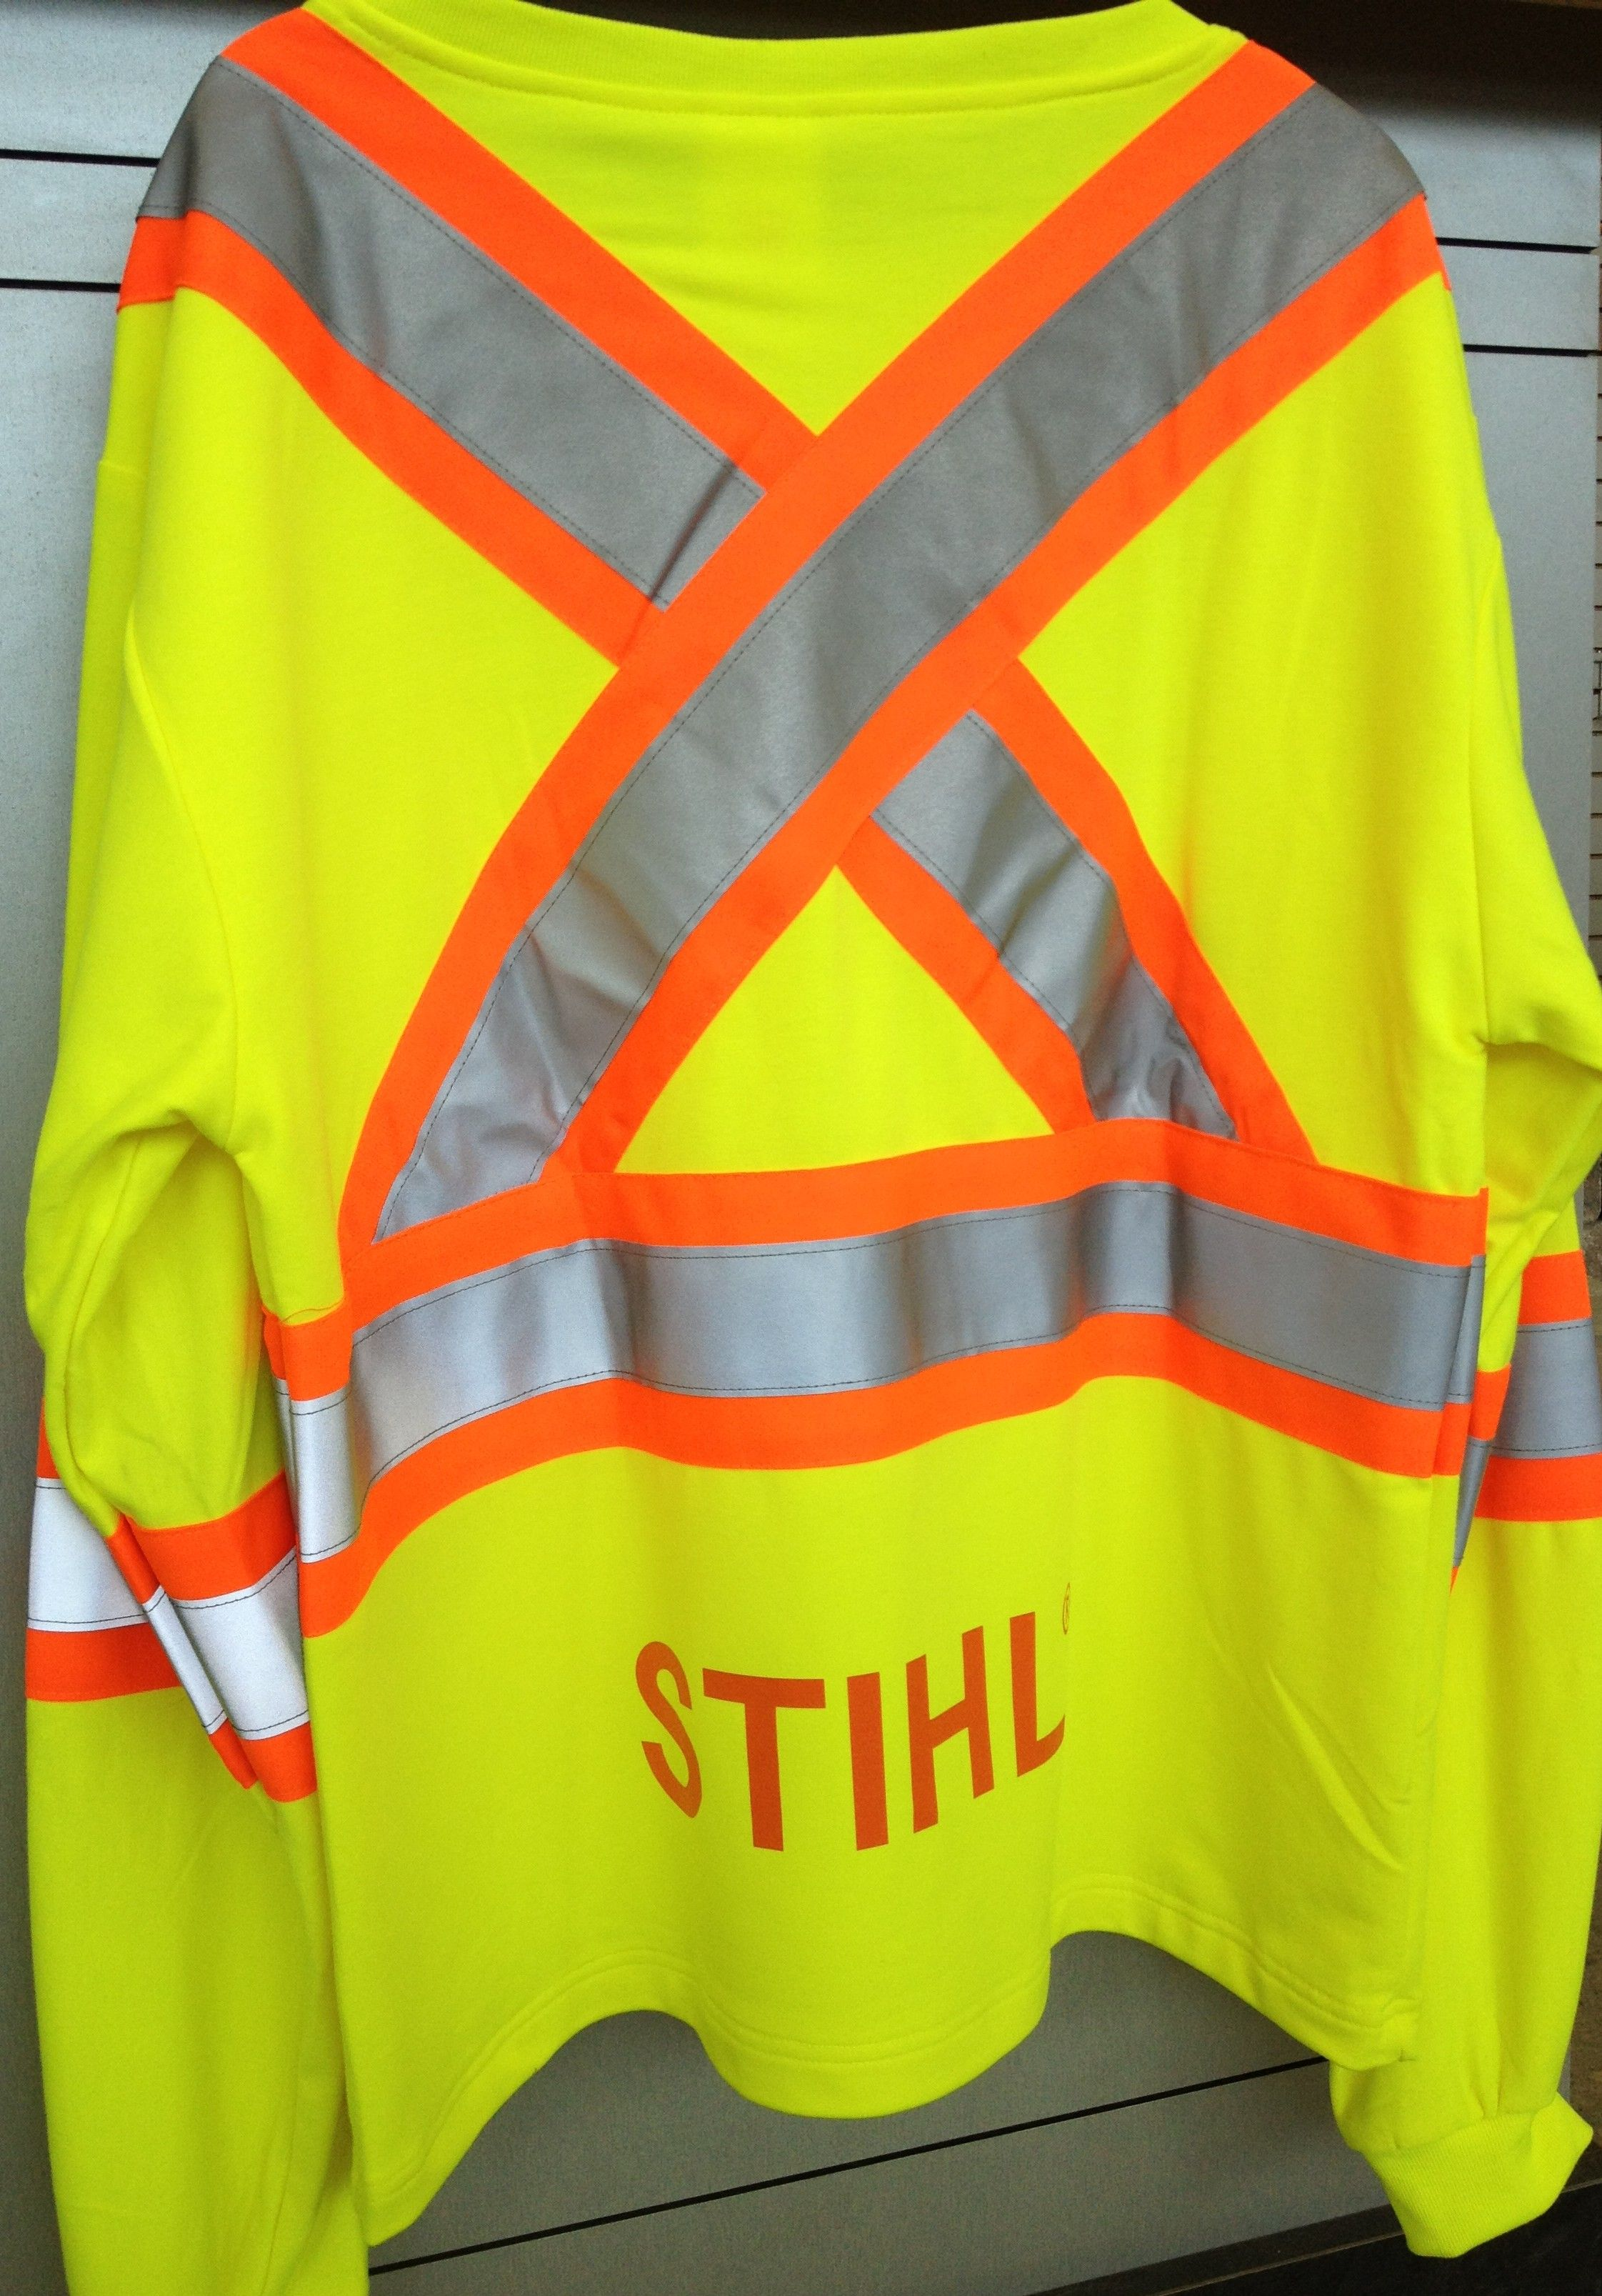 STIHL long sleeve safety shirt with reflective striping